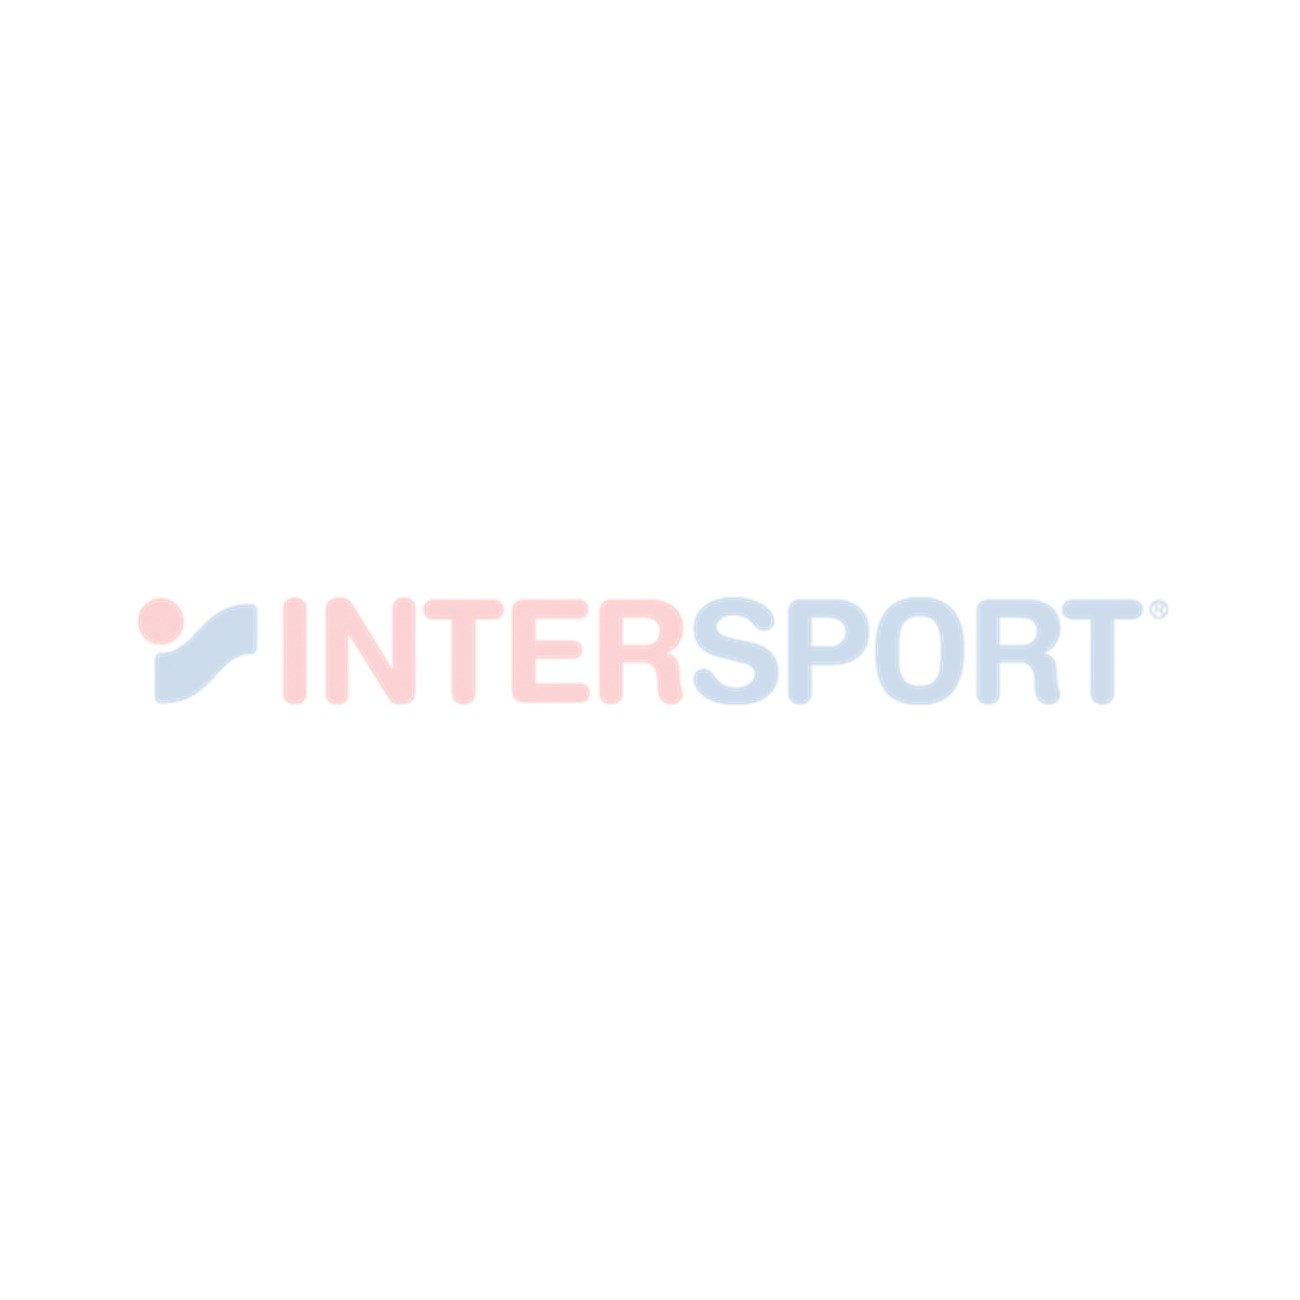 SEATOSUMMIT Τσάντα πλάτης ορειβασίας ULTRA-SIL NANO DAYPACK STS40-01023-0012 - INTERSPORT